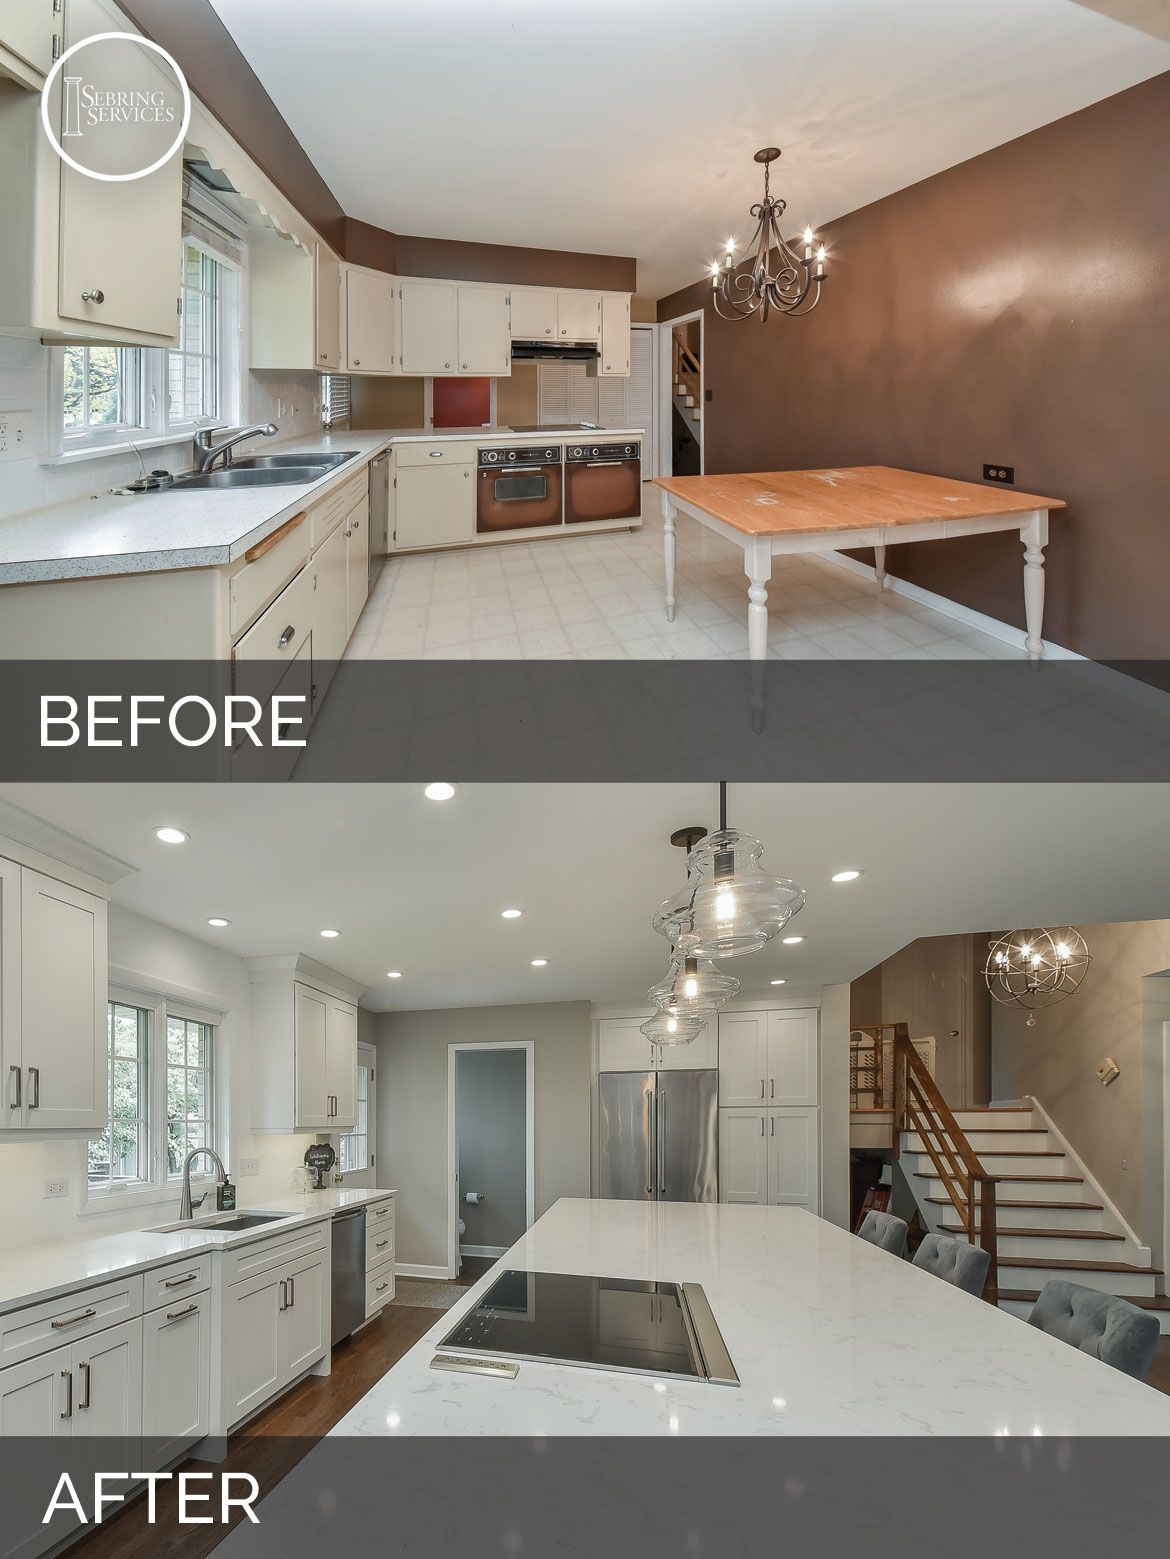 Before And After Open Floor Plan Kitchen Living Room White Cabinets Sebring Services